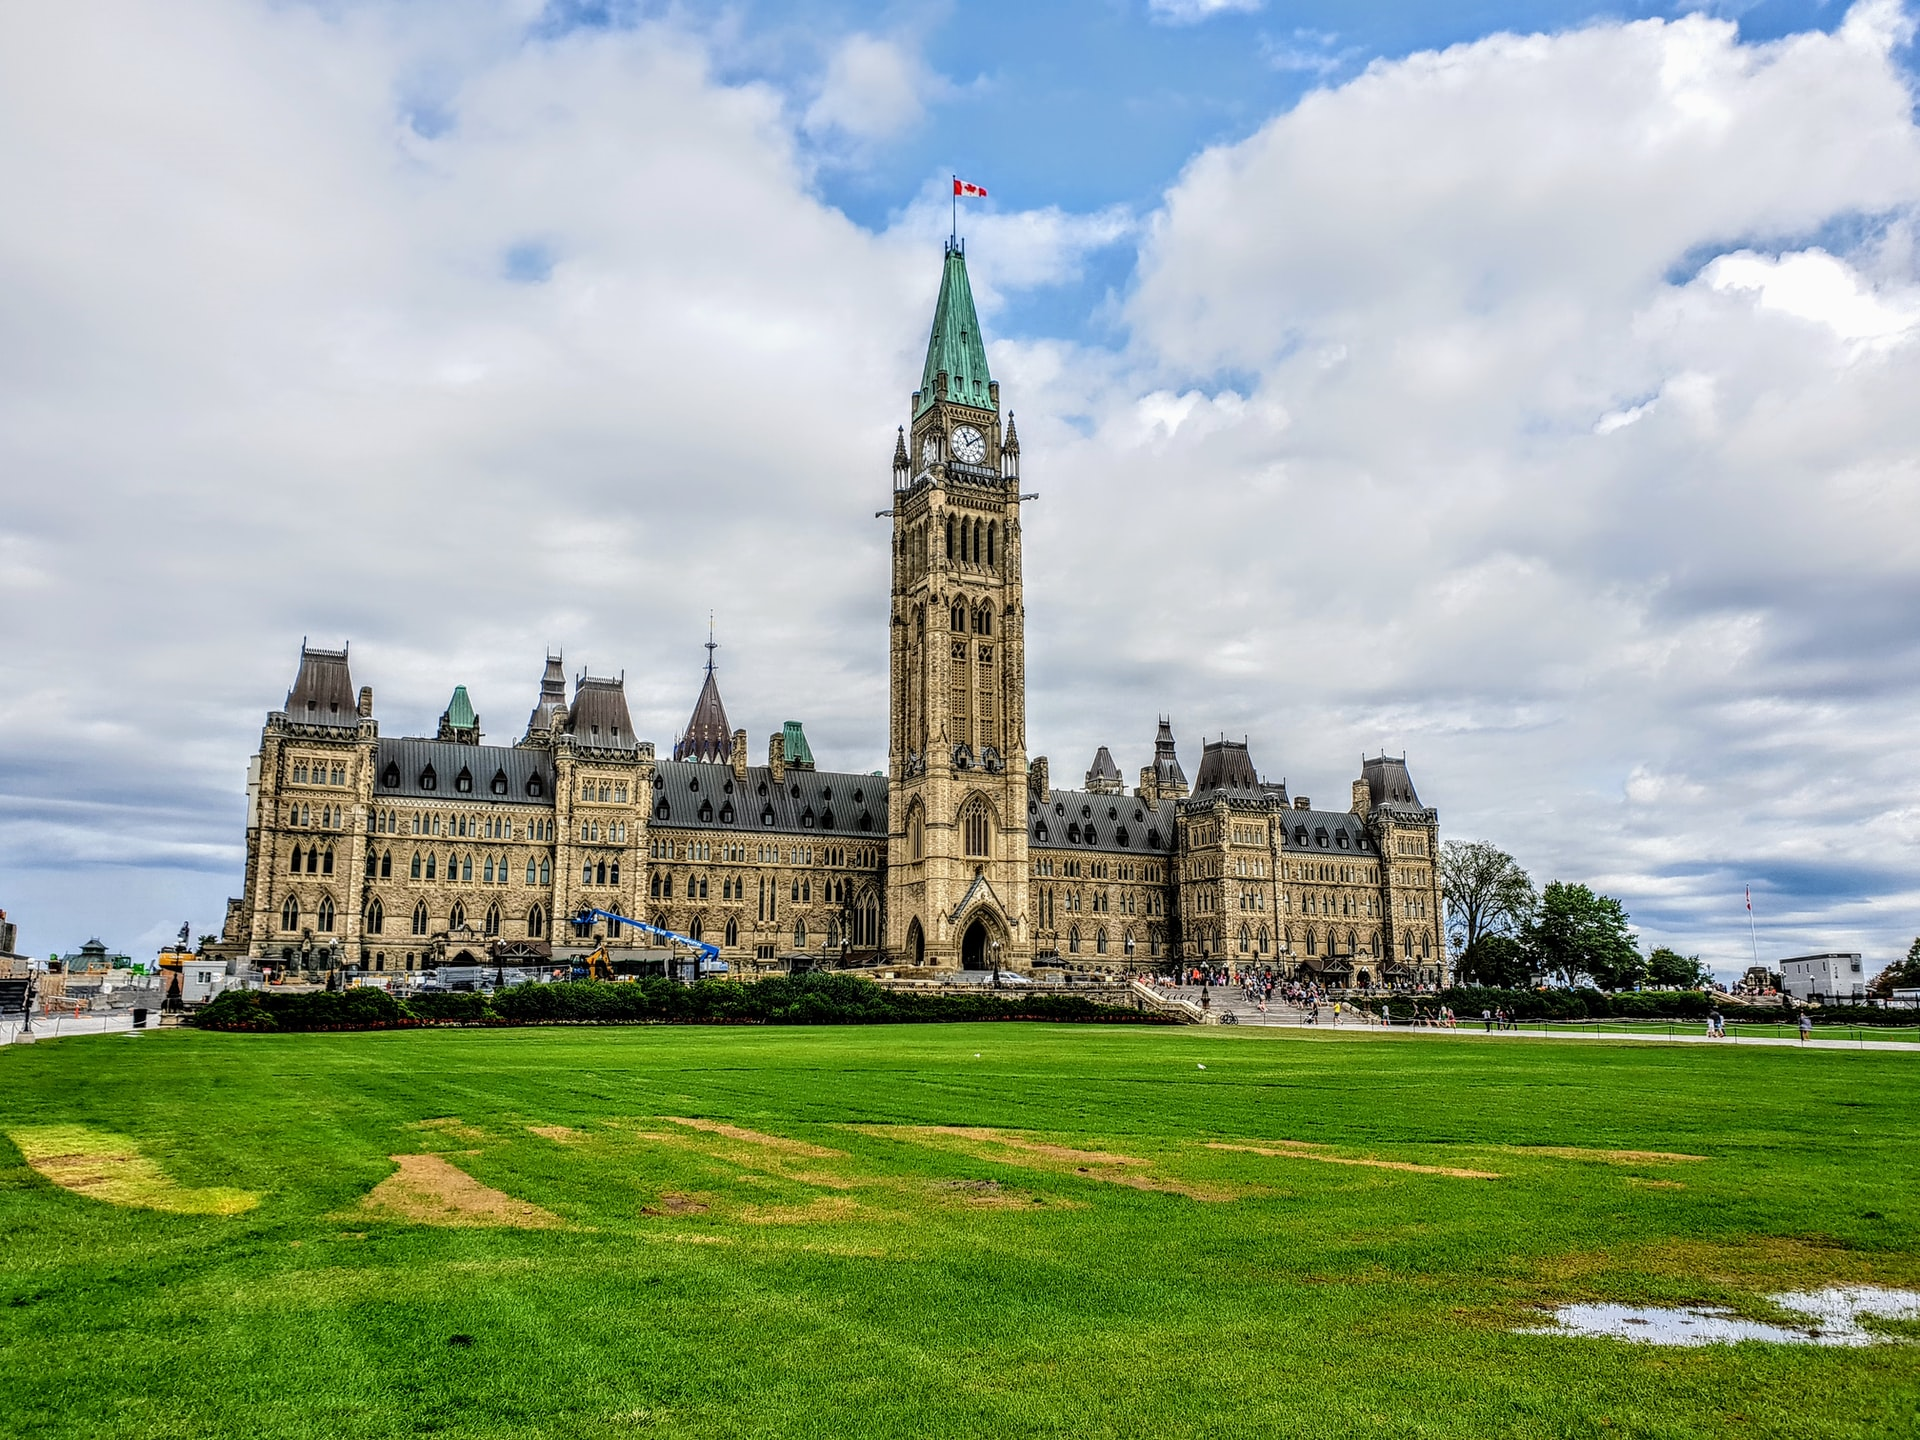 Parliment buildings in Ottawa